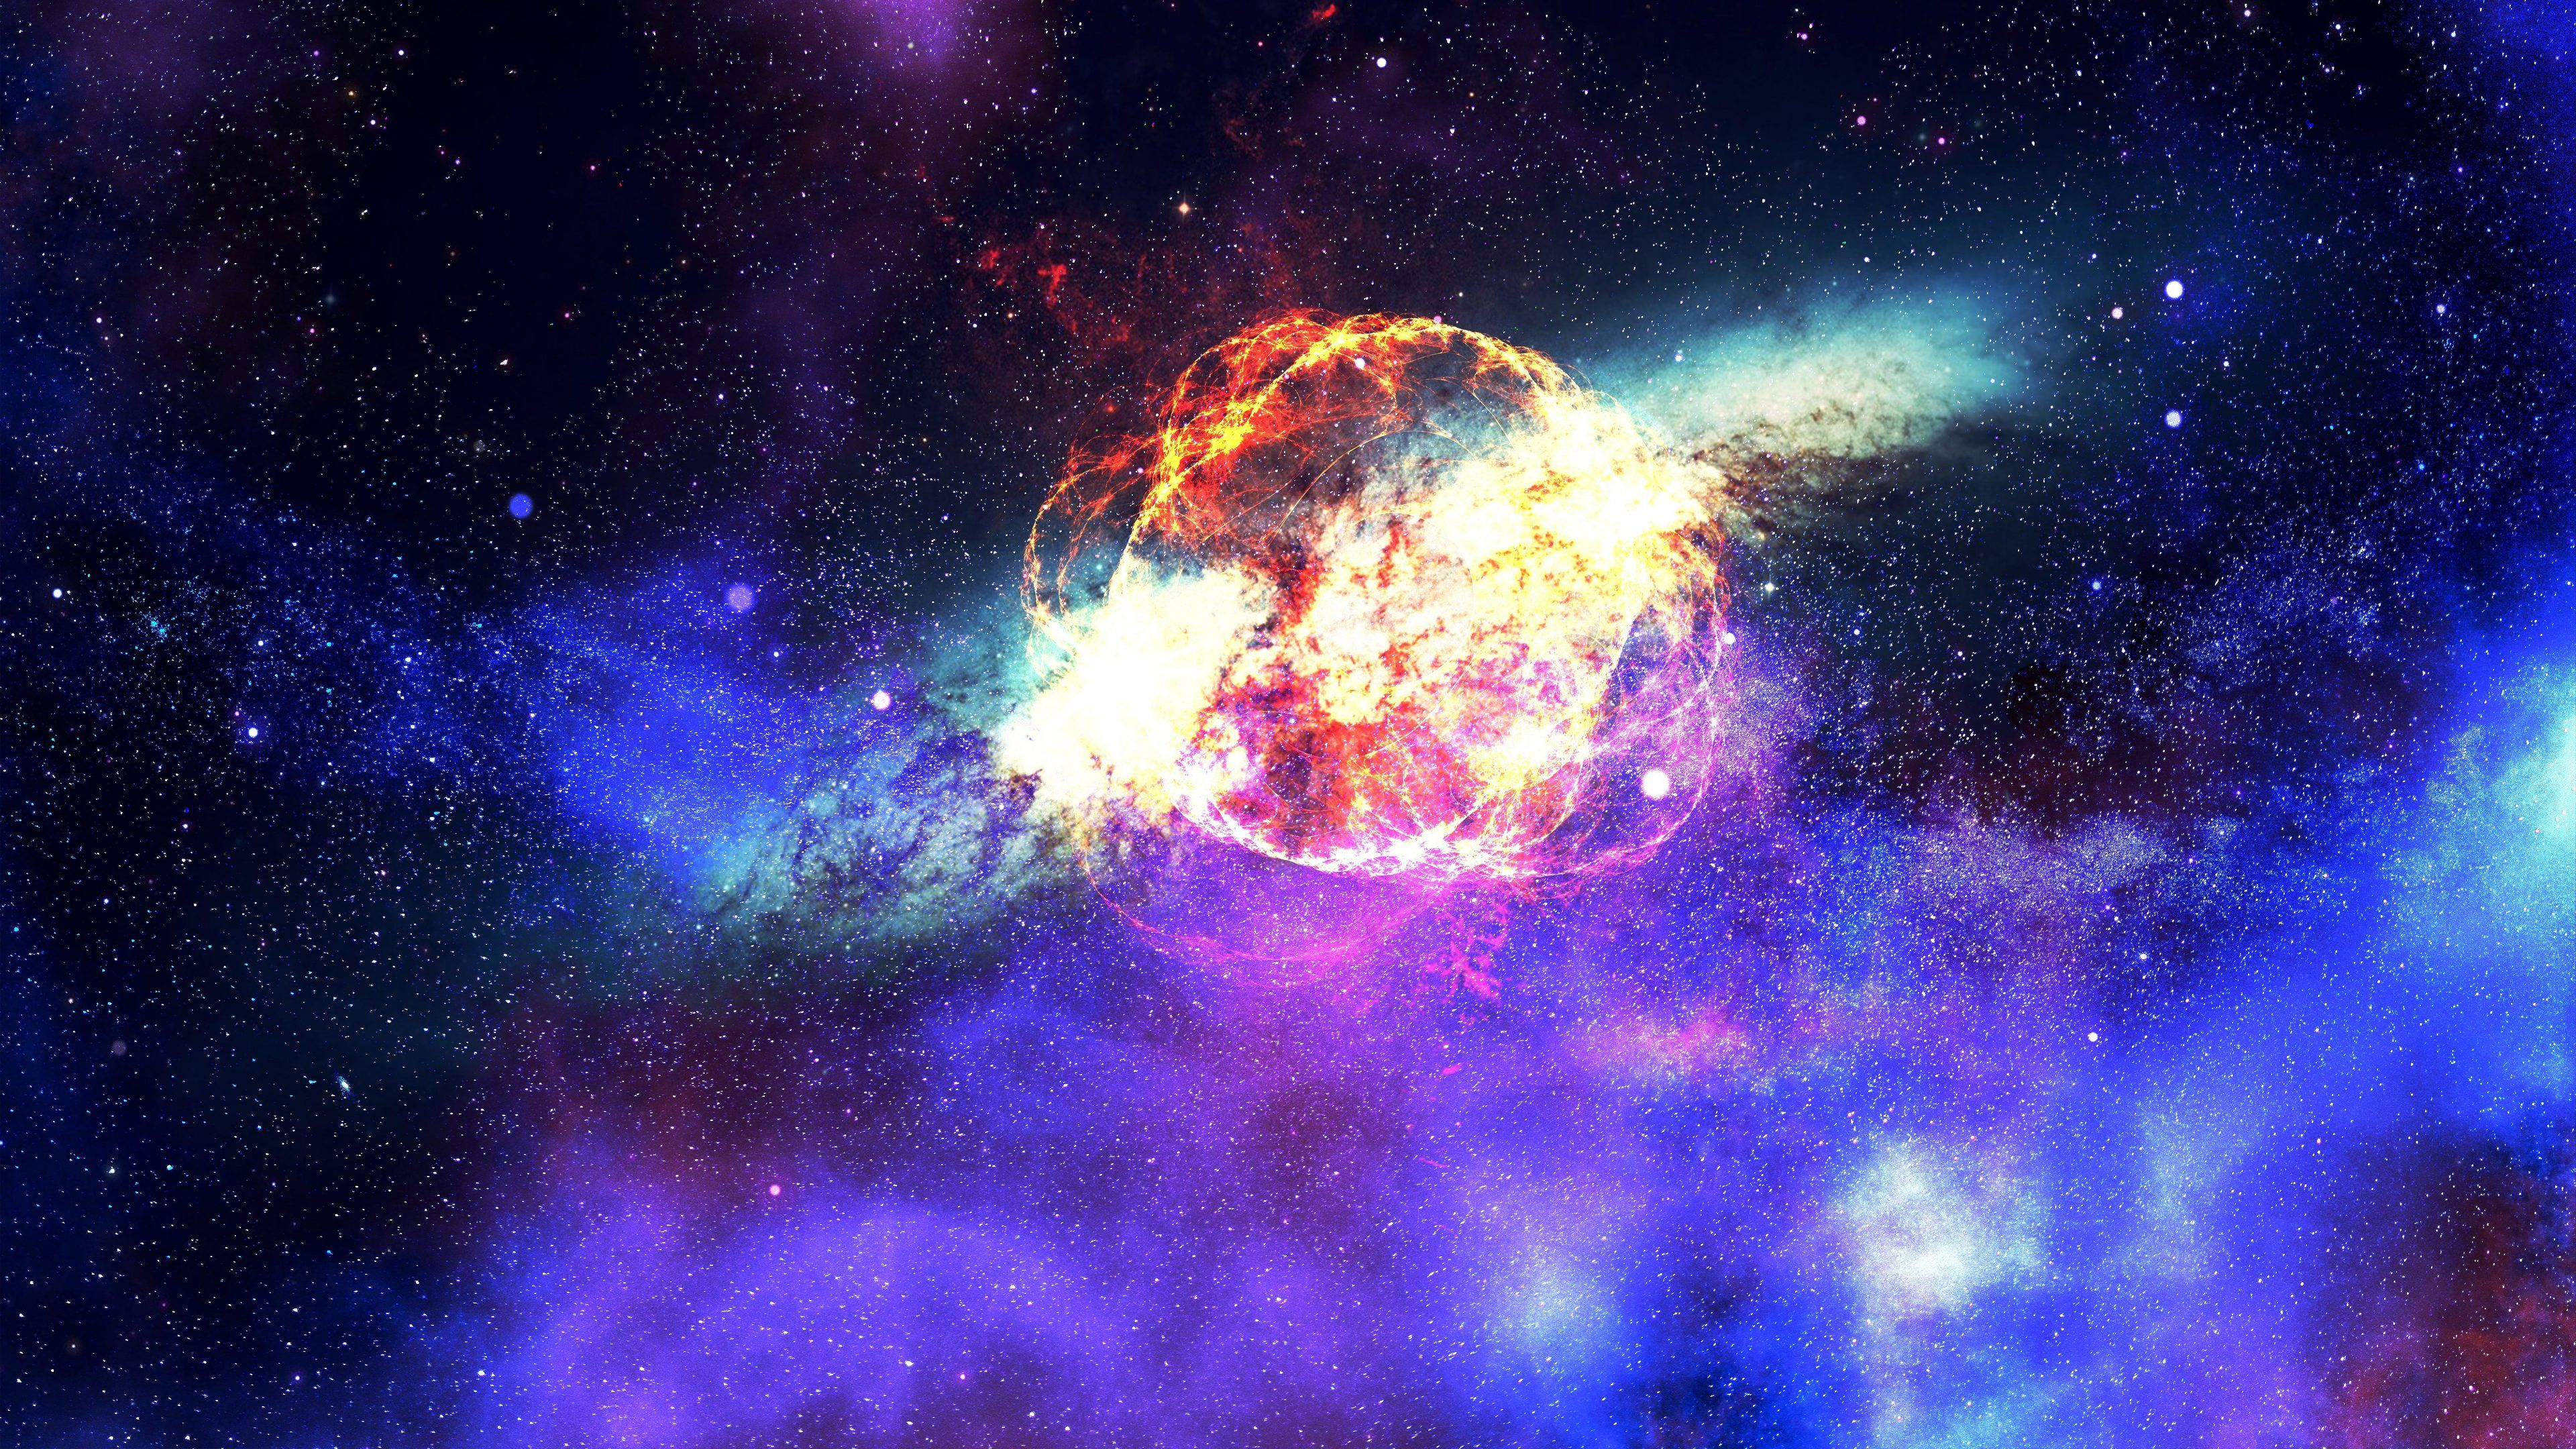 nebula galaxy outer space 4k http://livewallpaperswide/space